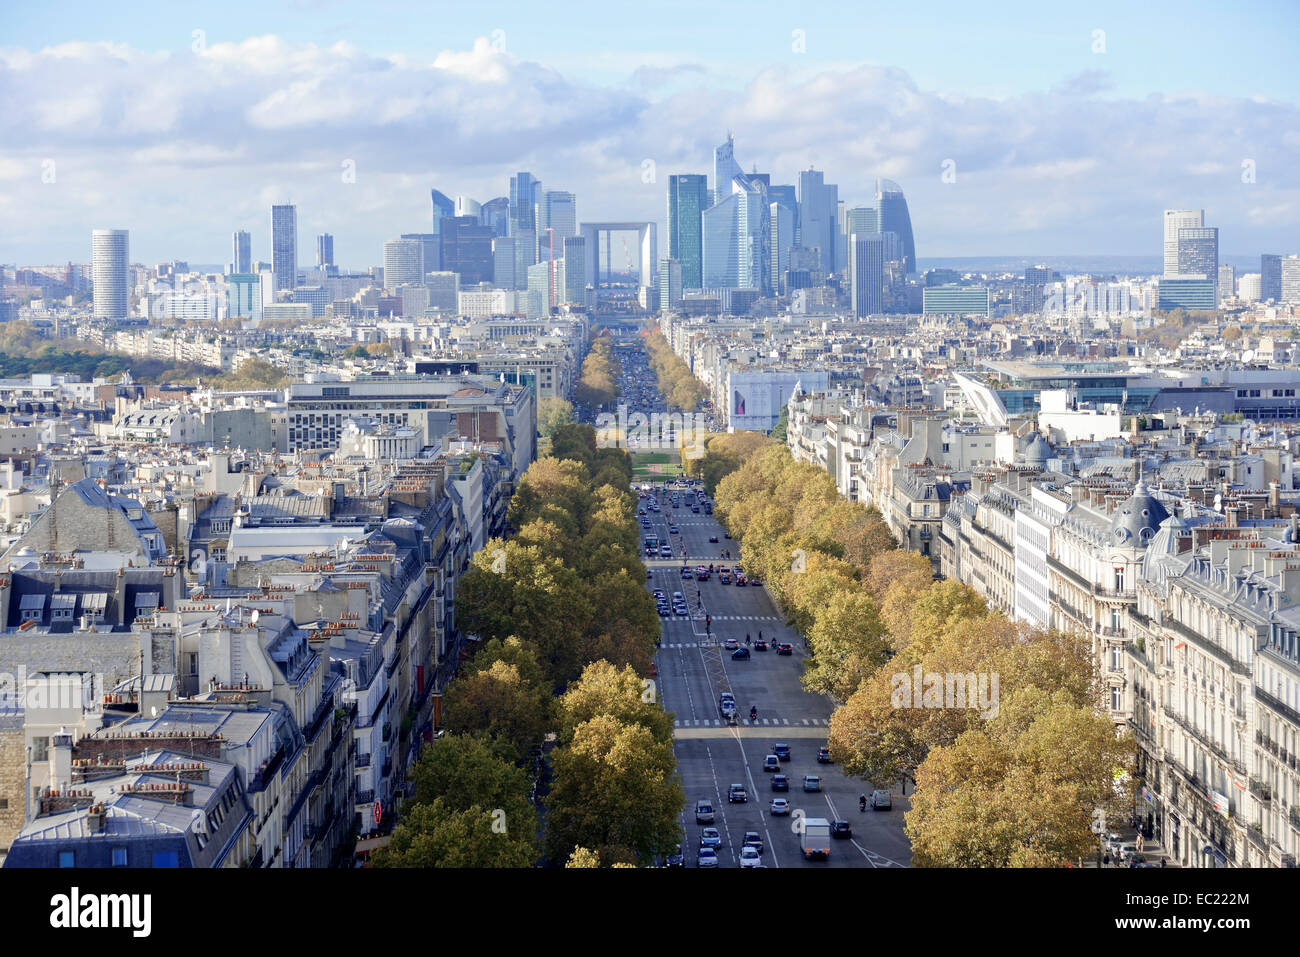 the champs elysees stock photos the champs elysees stock images alamy. Black Bedroom Furniture Sets. Home Design Ideas